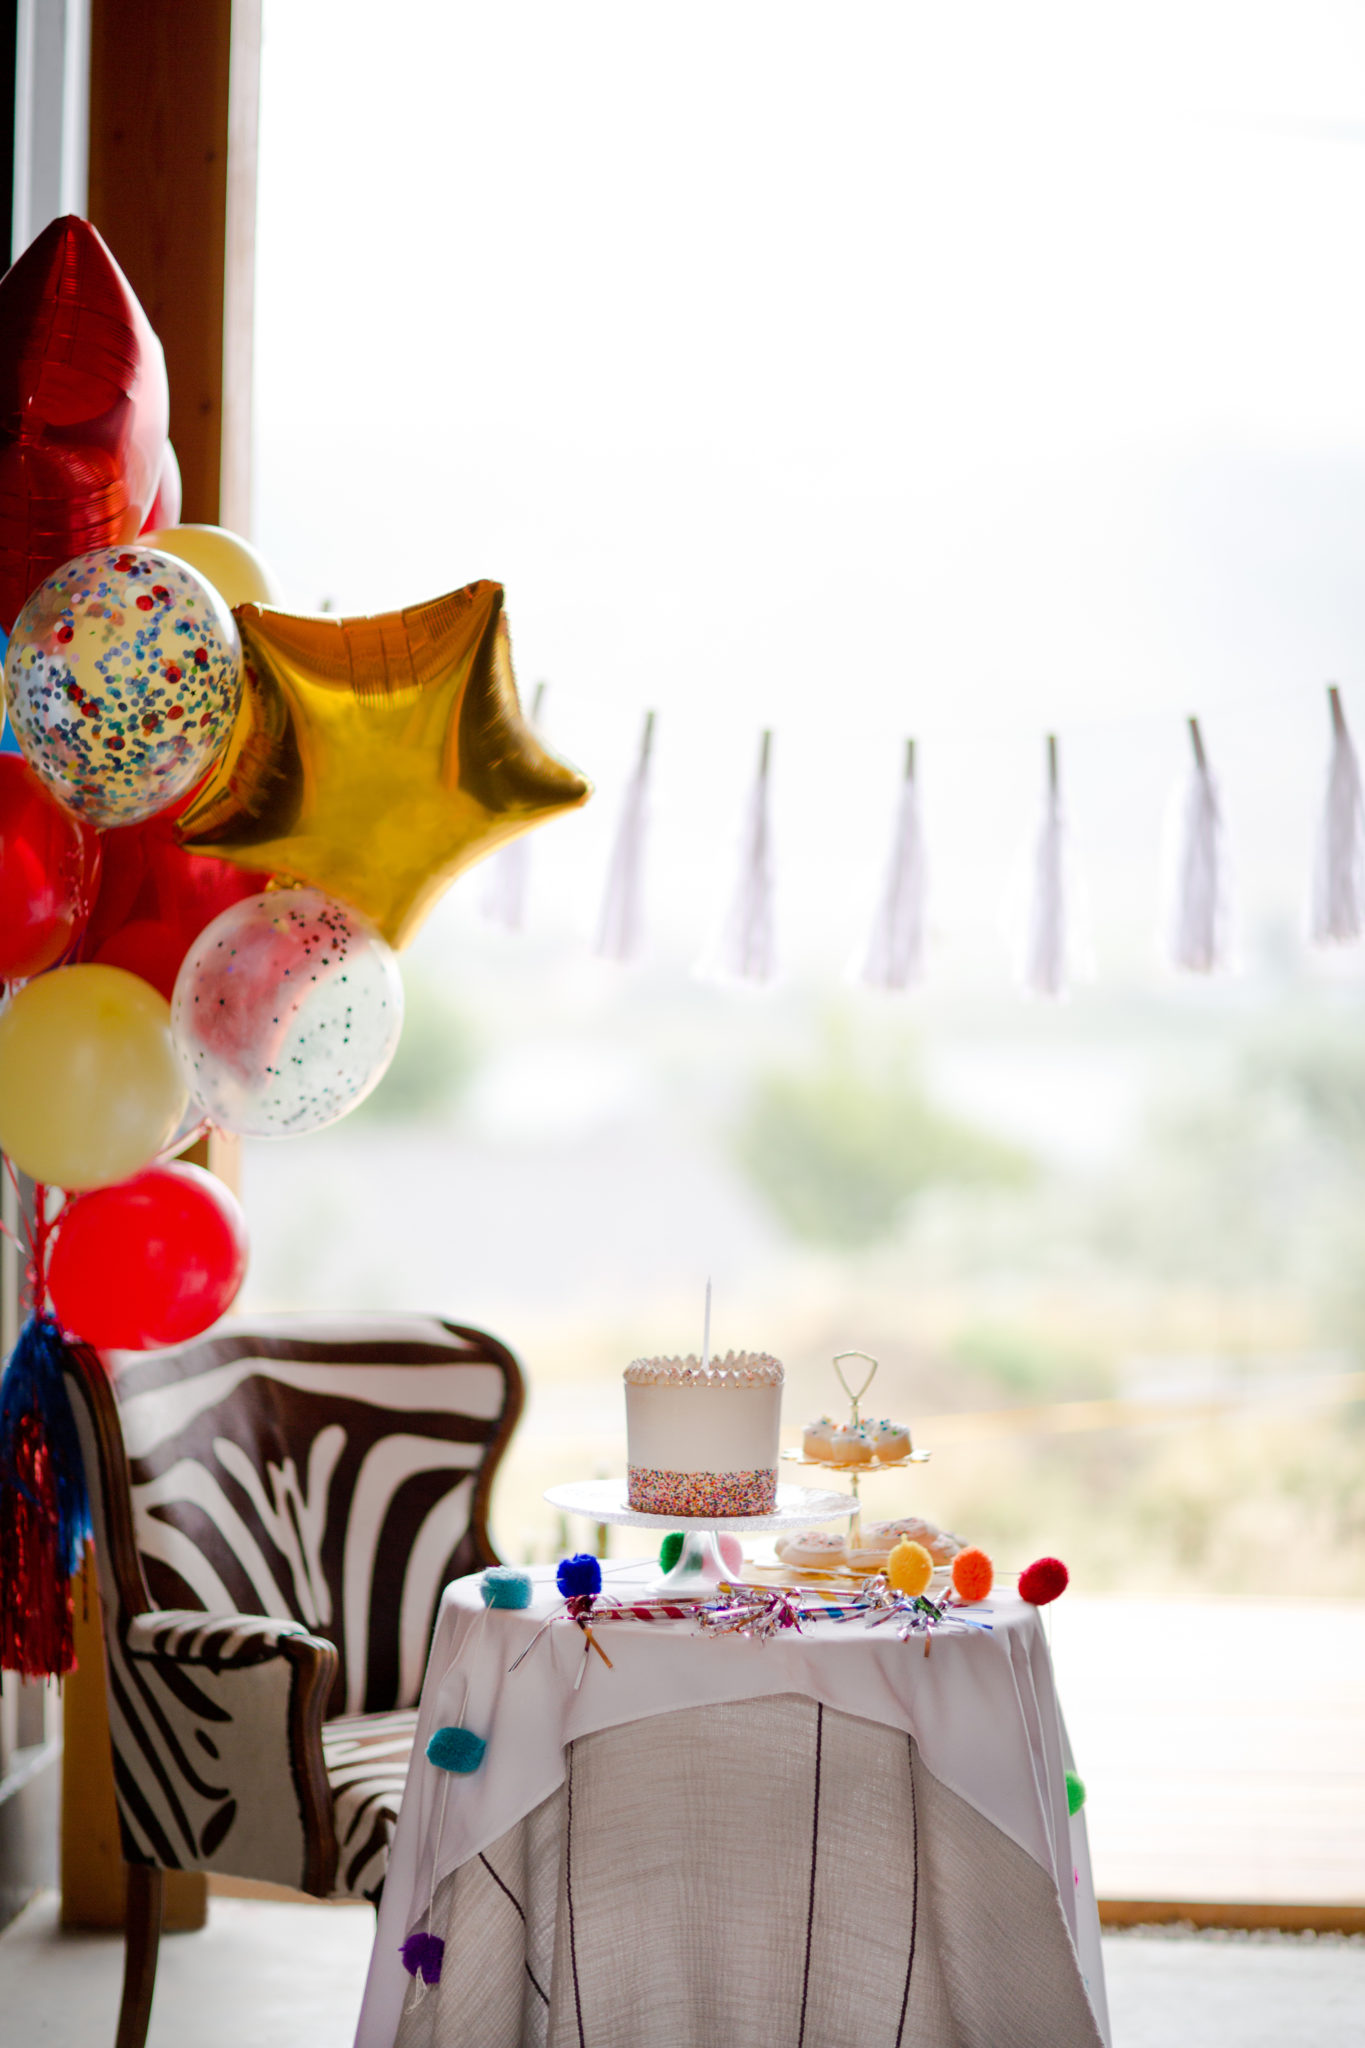 How to Celebrate a Special Occasion in Kamloops, British Columbia